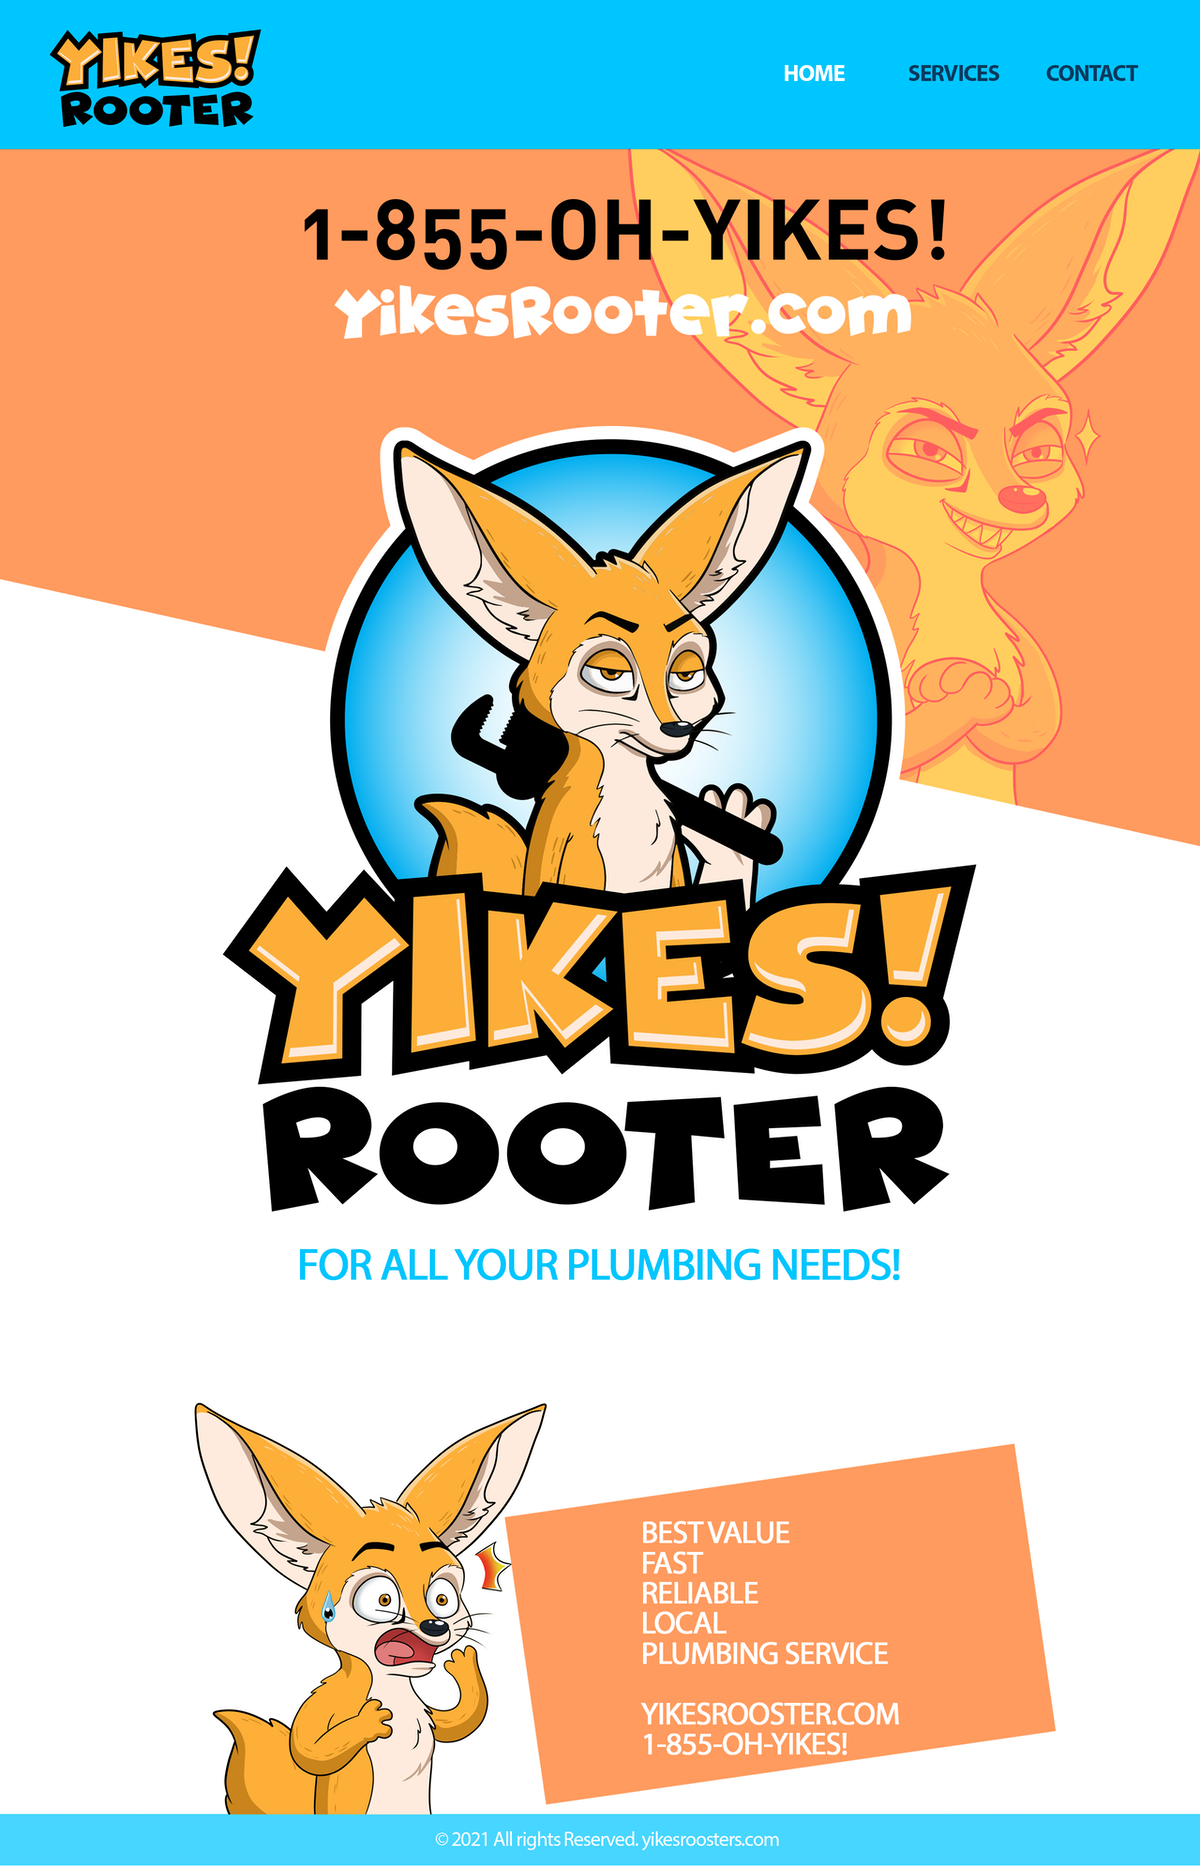 Website design for Yikes Rooter